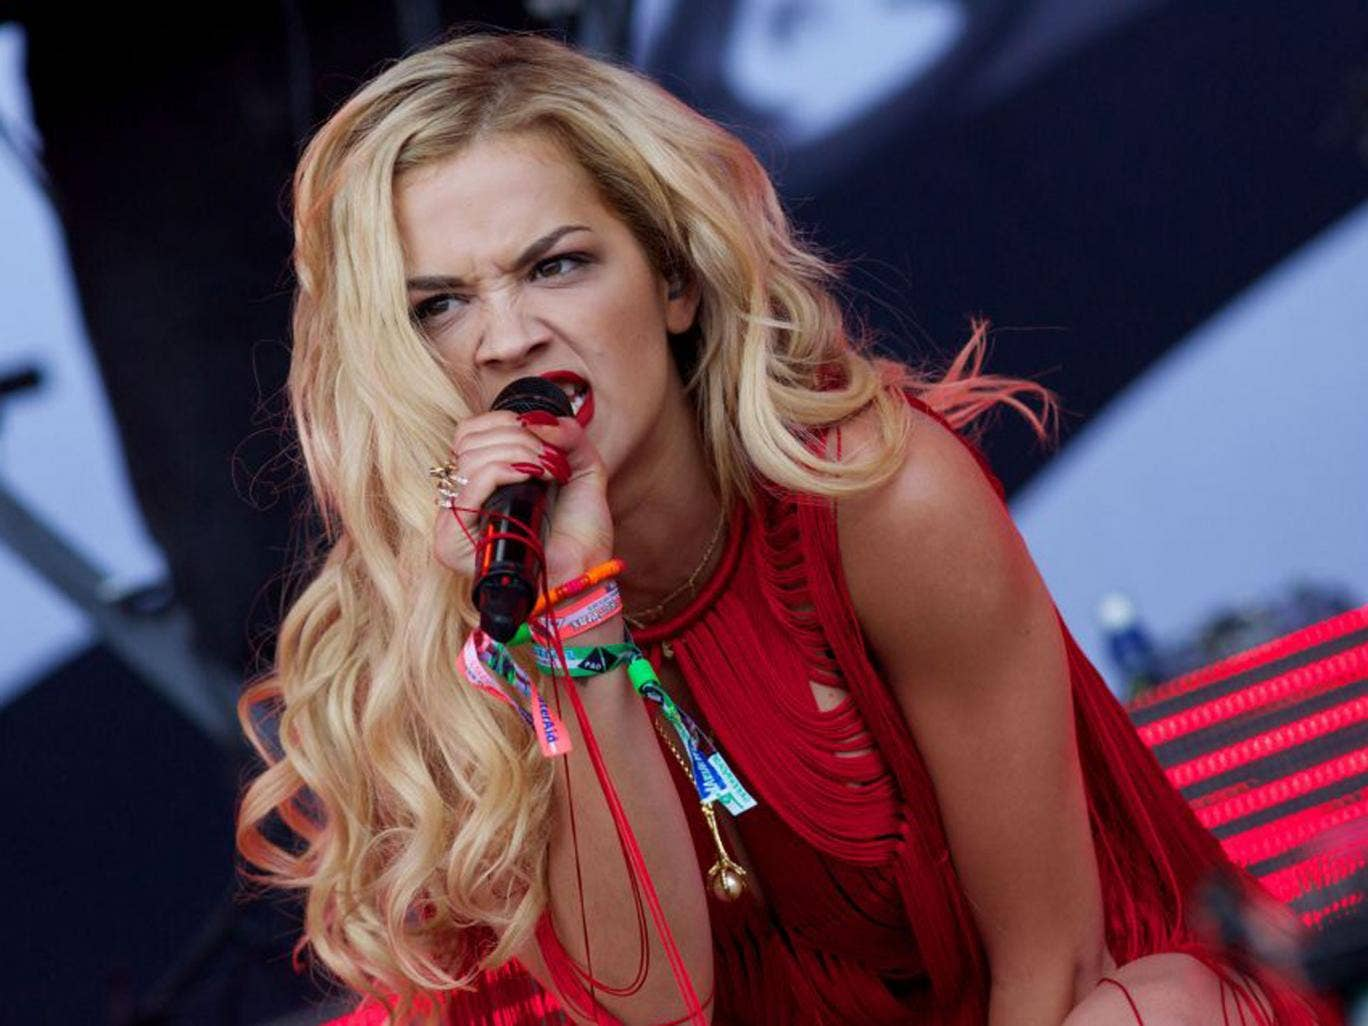 Rita Ora performing on the Pyramid Stage, at the Glastonbury Festival, at Worthy Farm in SomersetAFP